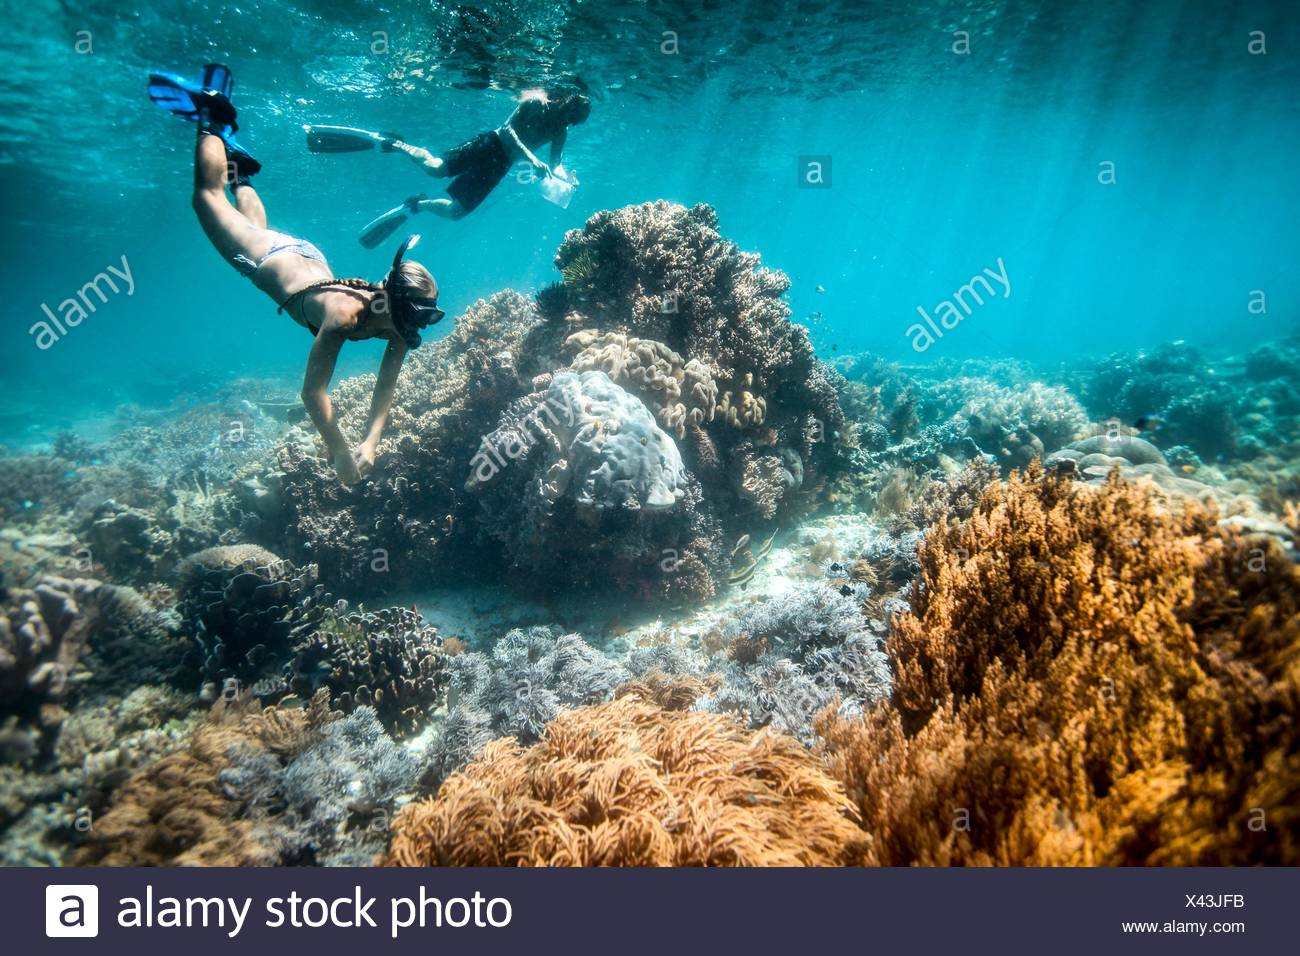 Two snorkelers perform scientific surveys on coral reef and fish, Raja Ampat, West Papua, Indonesia - Stock Image